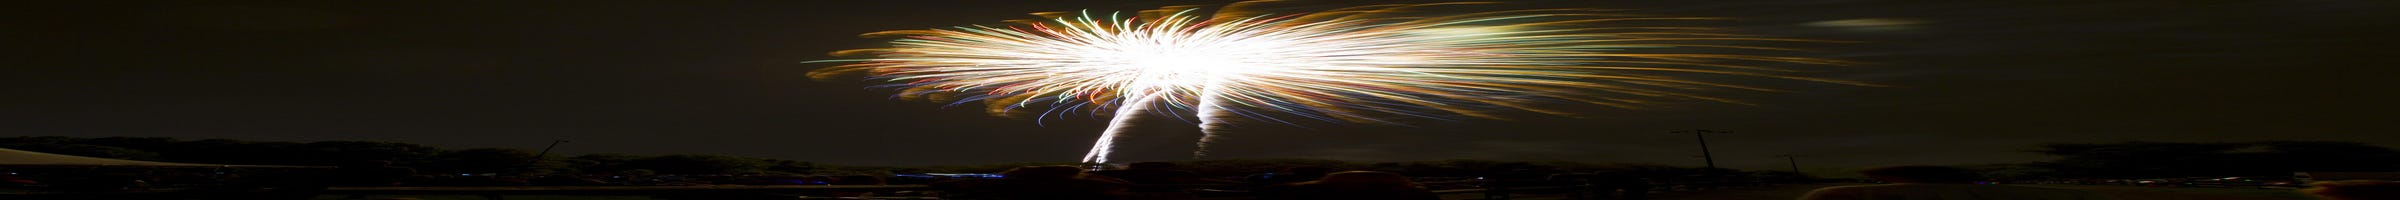 LETTER: Morris County fireworks show disruptive to wildlife